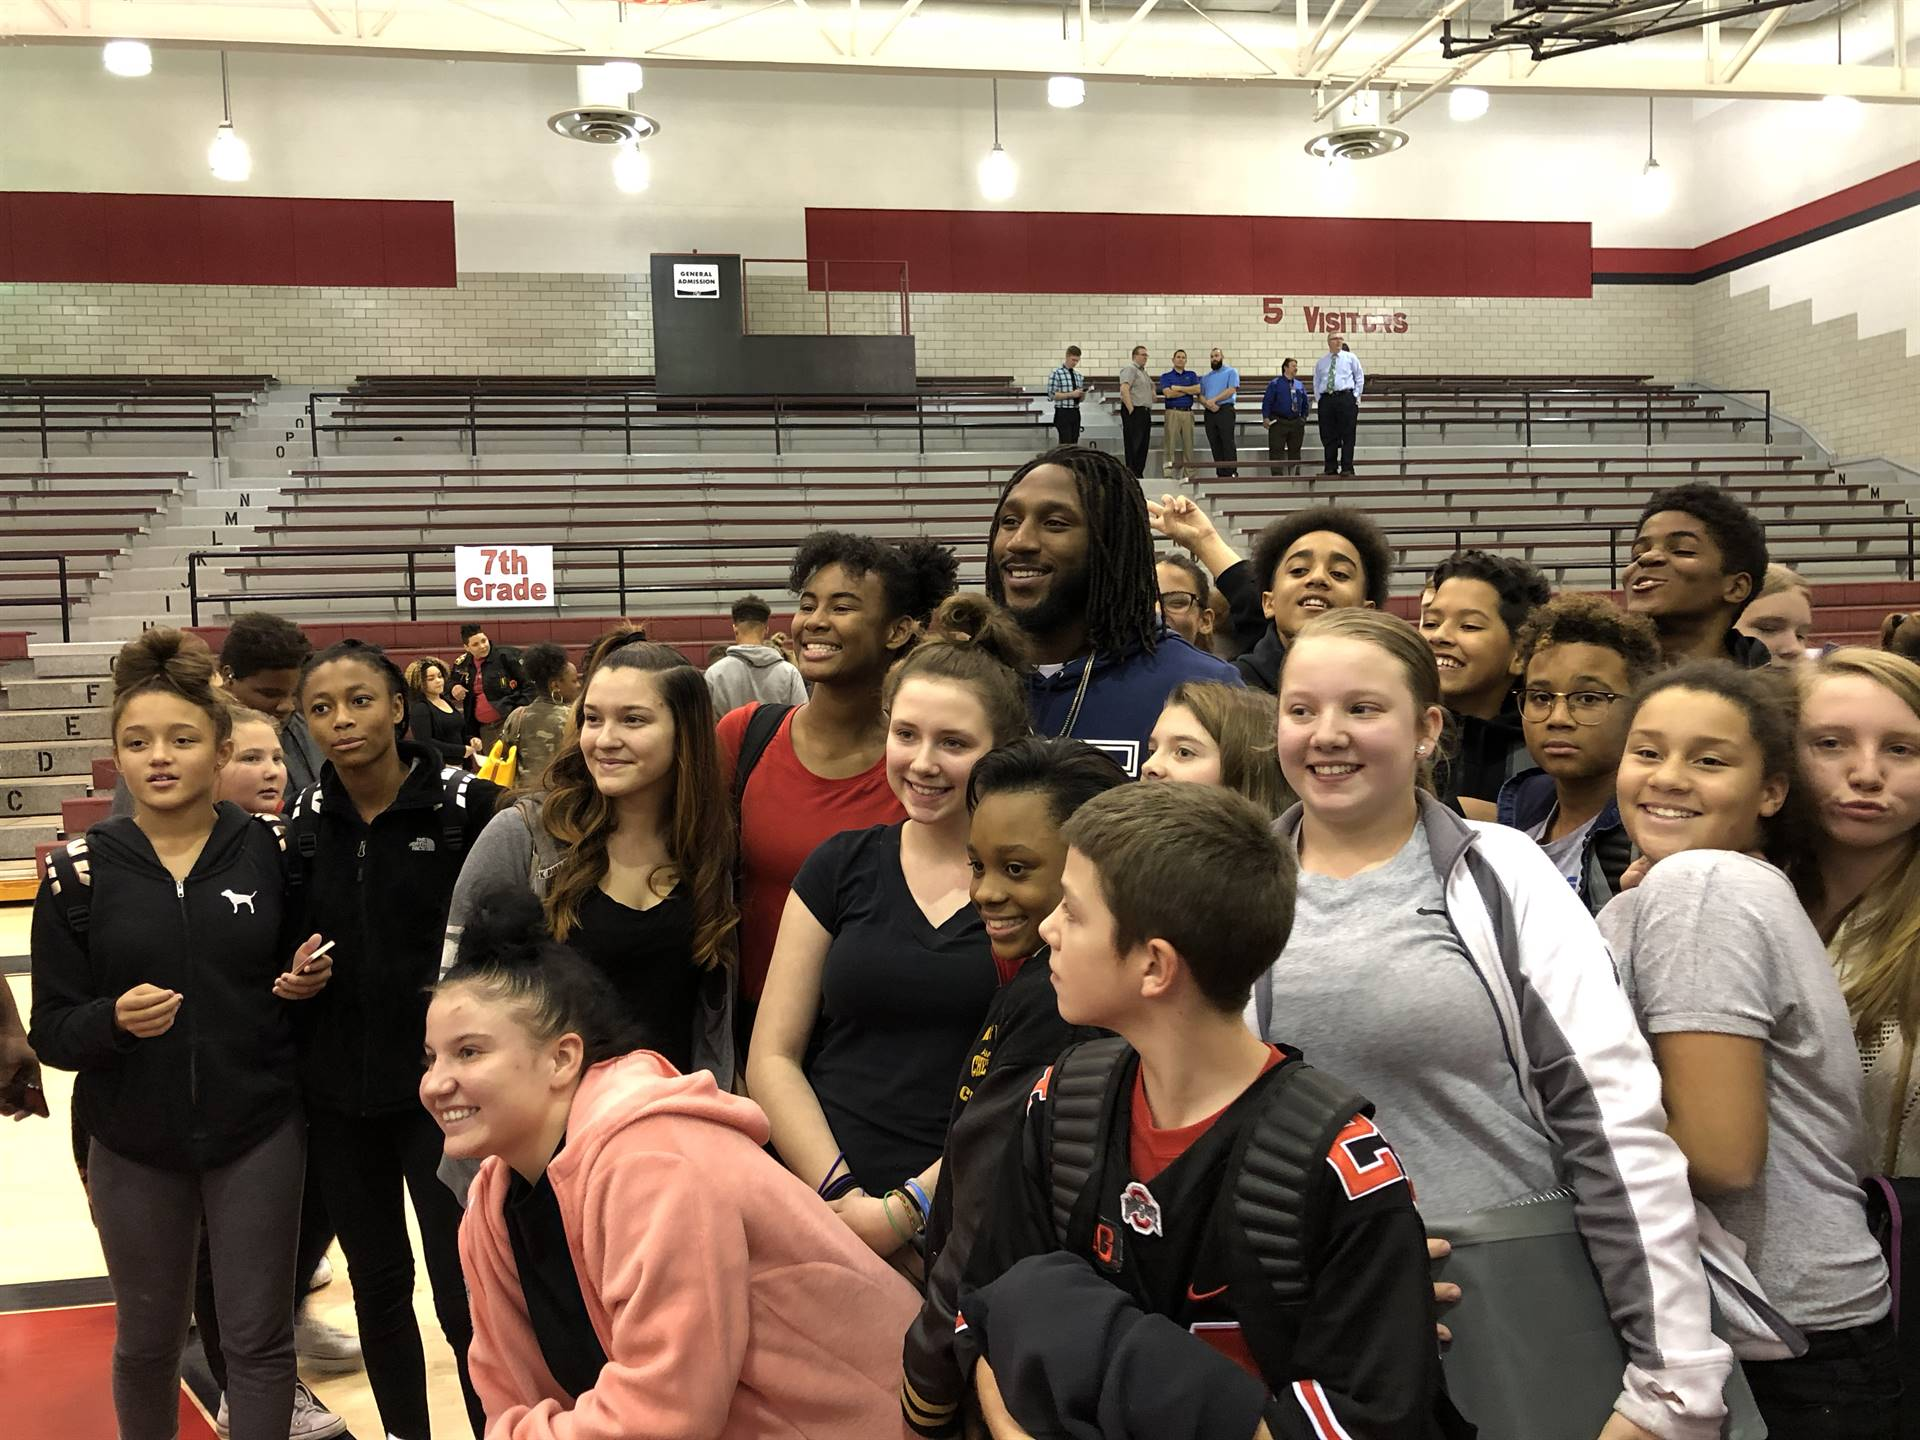 Malik poses with students after the pep rally